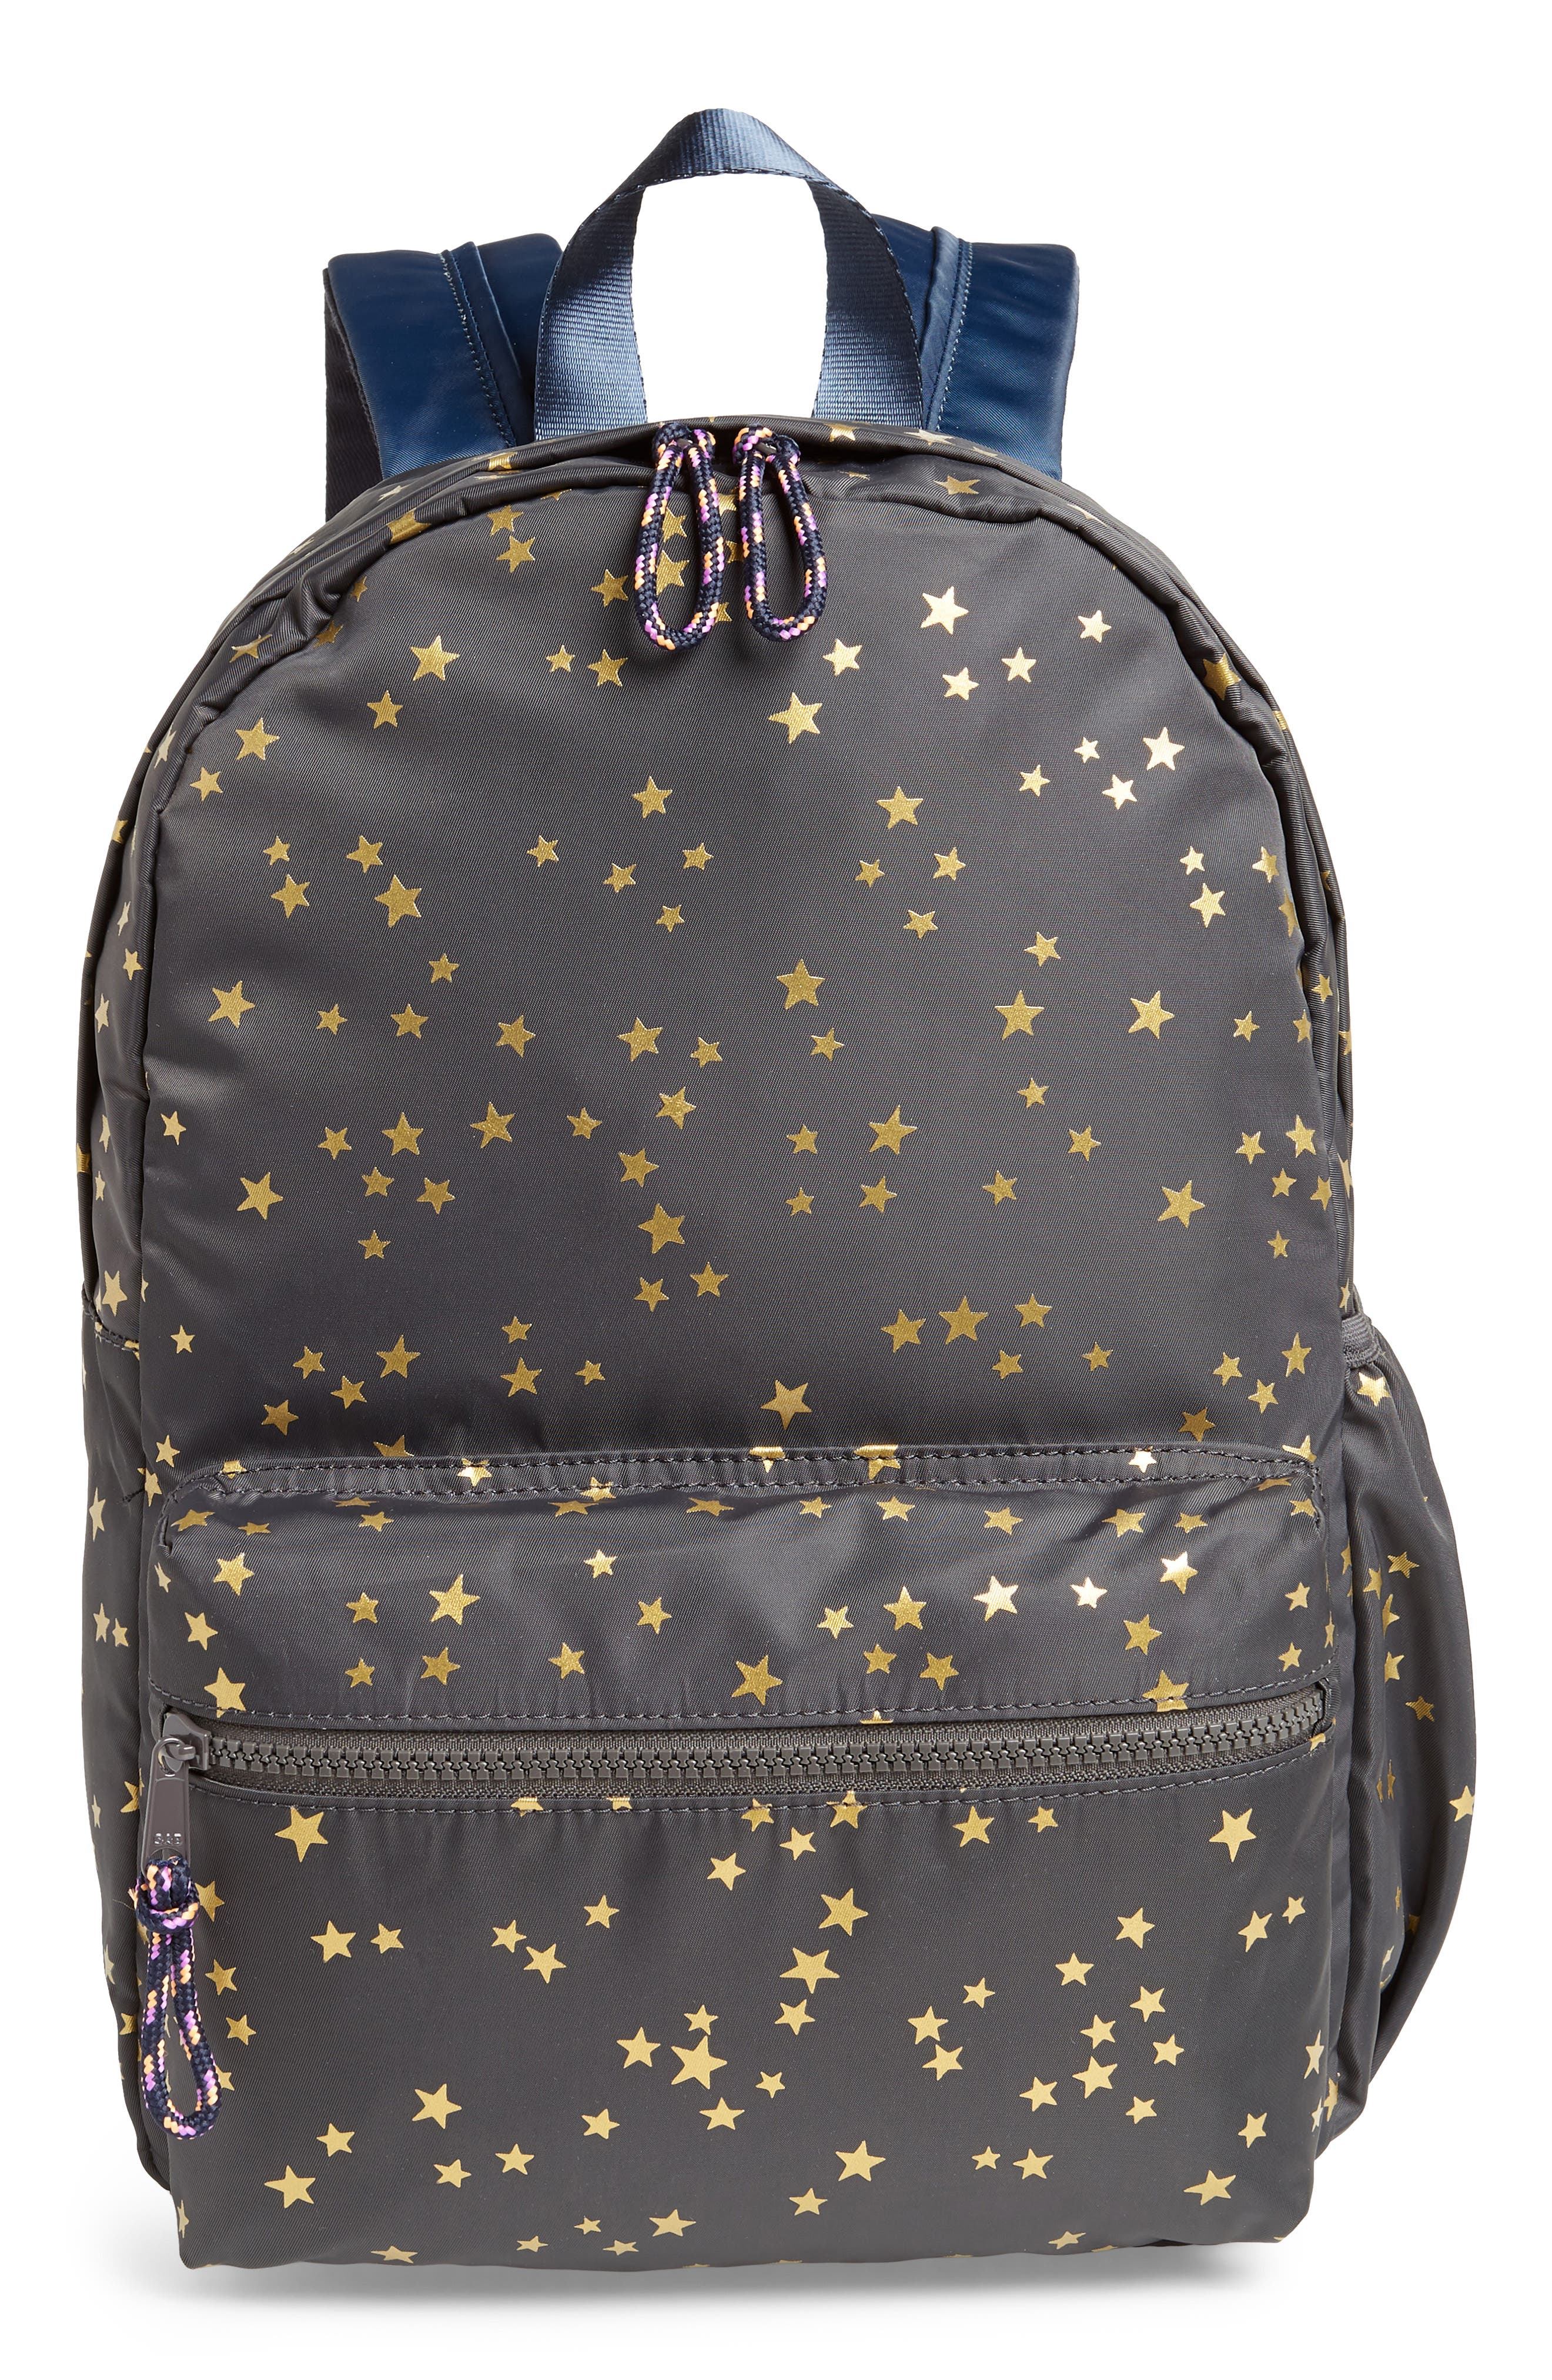 Gold Star Backpack,                             Main thumbnail 1, color,                             SOFT CHARCOAL